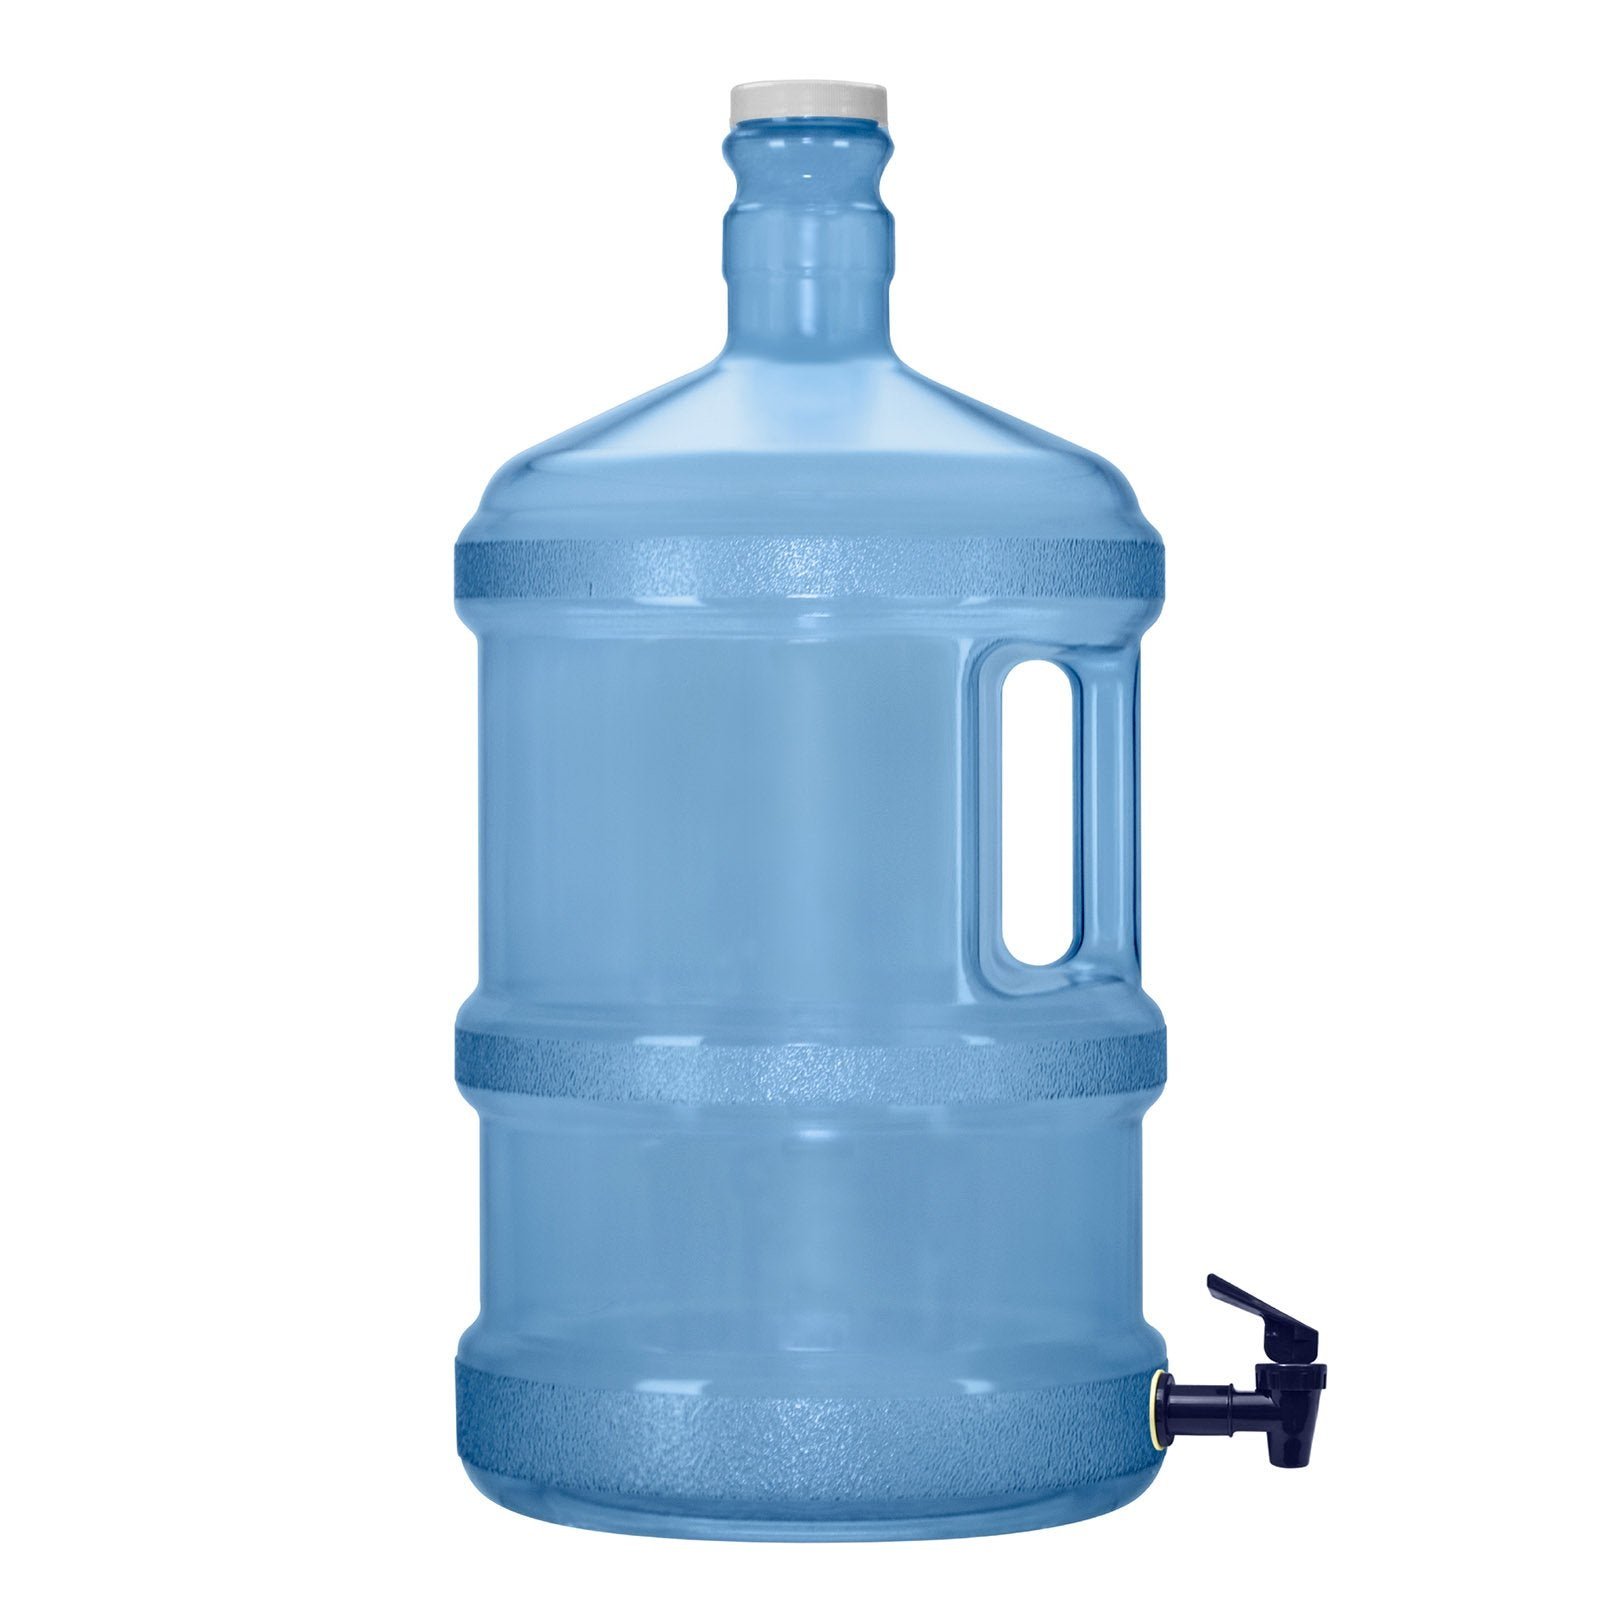 3 Gallon Polycarbonate Plastic Reusable Water Bottle with Screw Cap and Valve